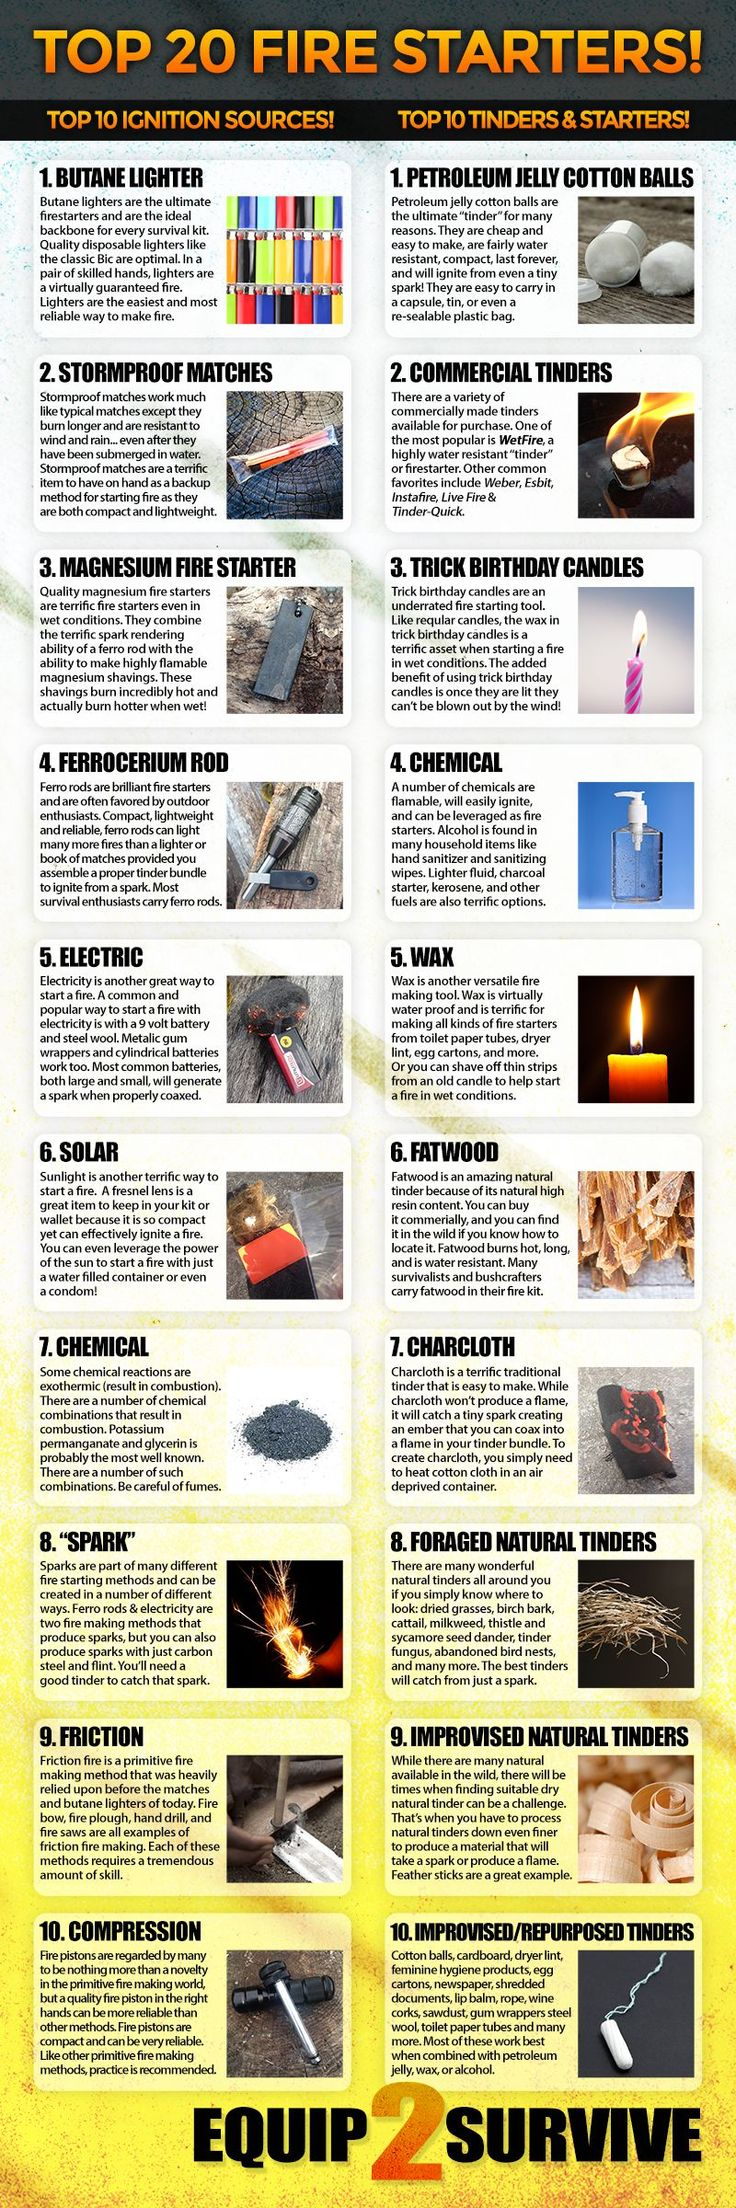 25 Genius Campfire Recipes | Survival Life